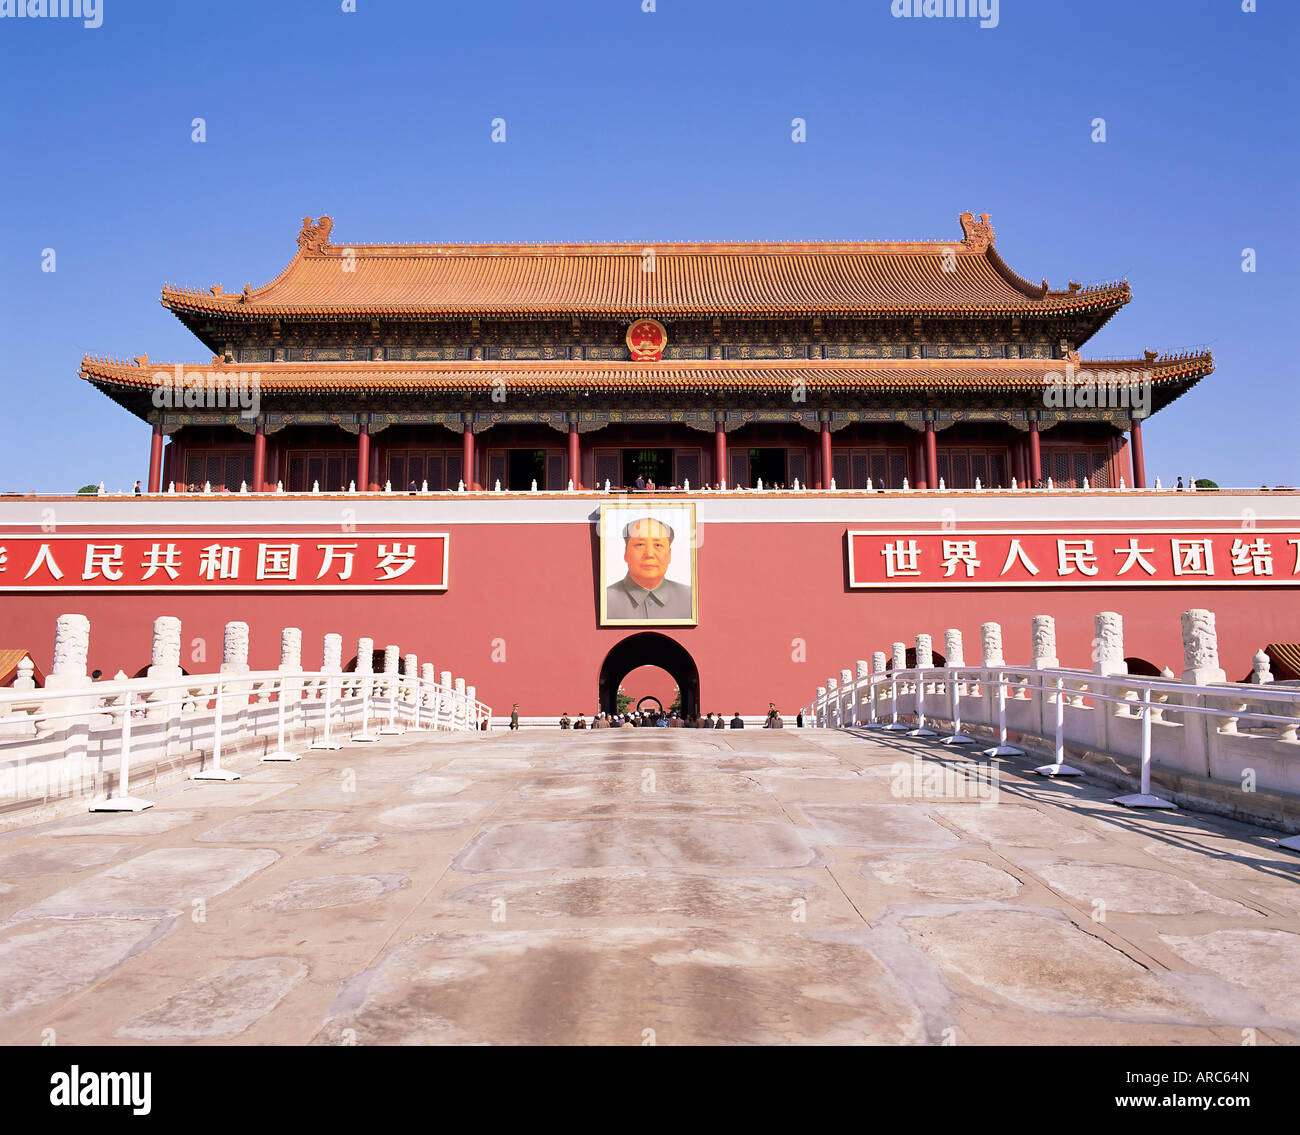 Portrait of Chairman Mao, Gate of Heavenly Peace (Tiananmen), Tiananmen Square, Beijing, China, Asia - Stock Image